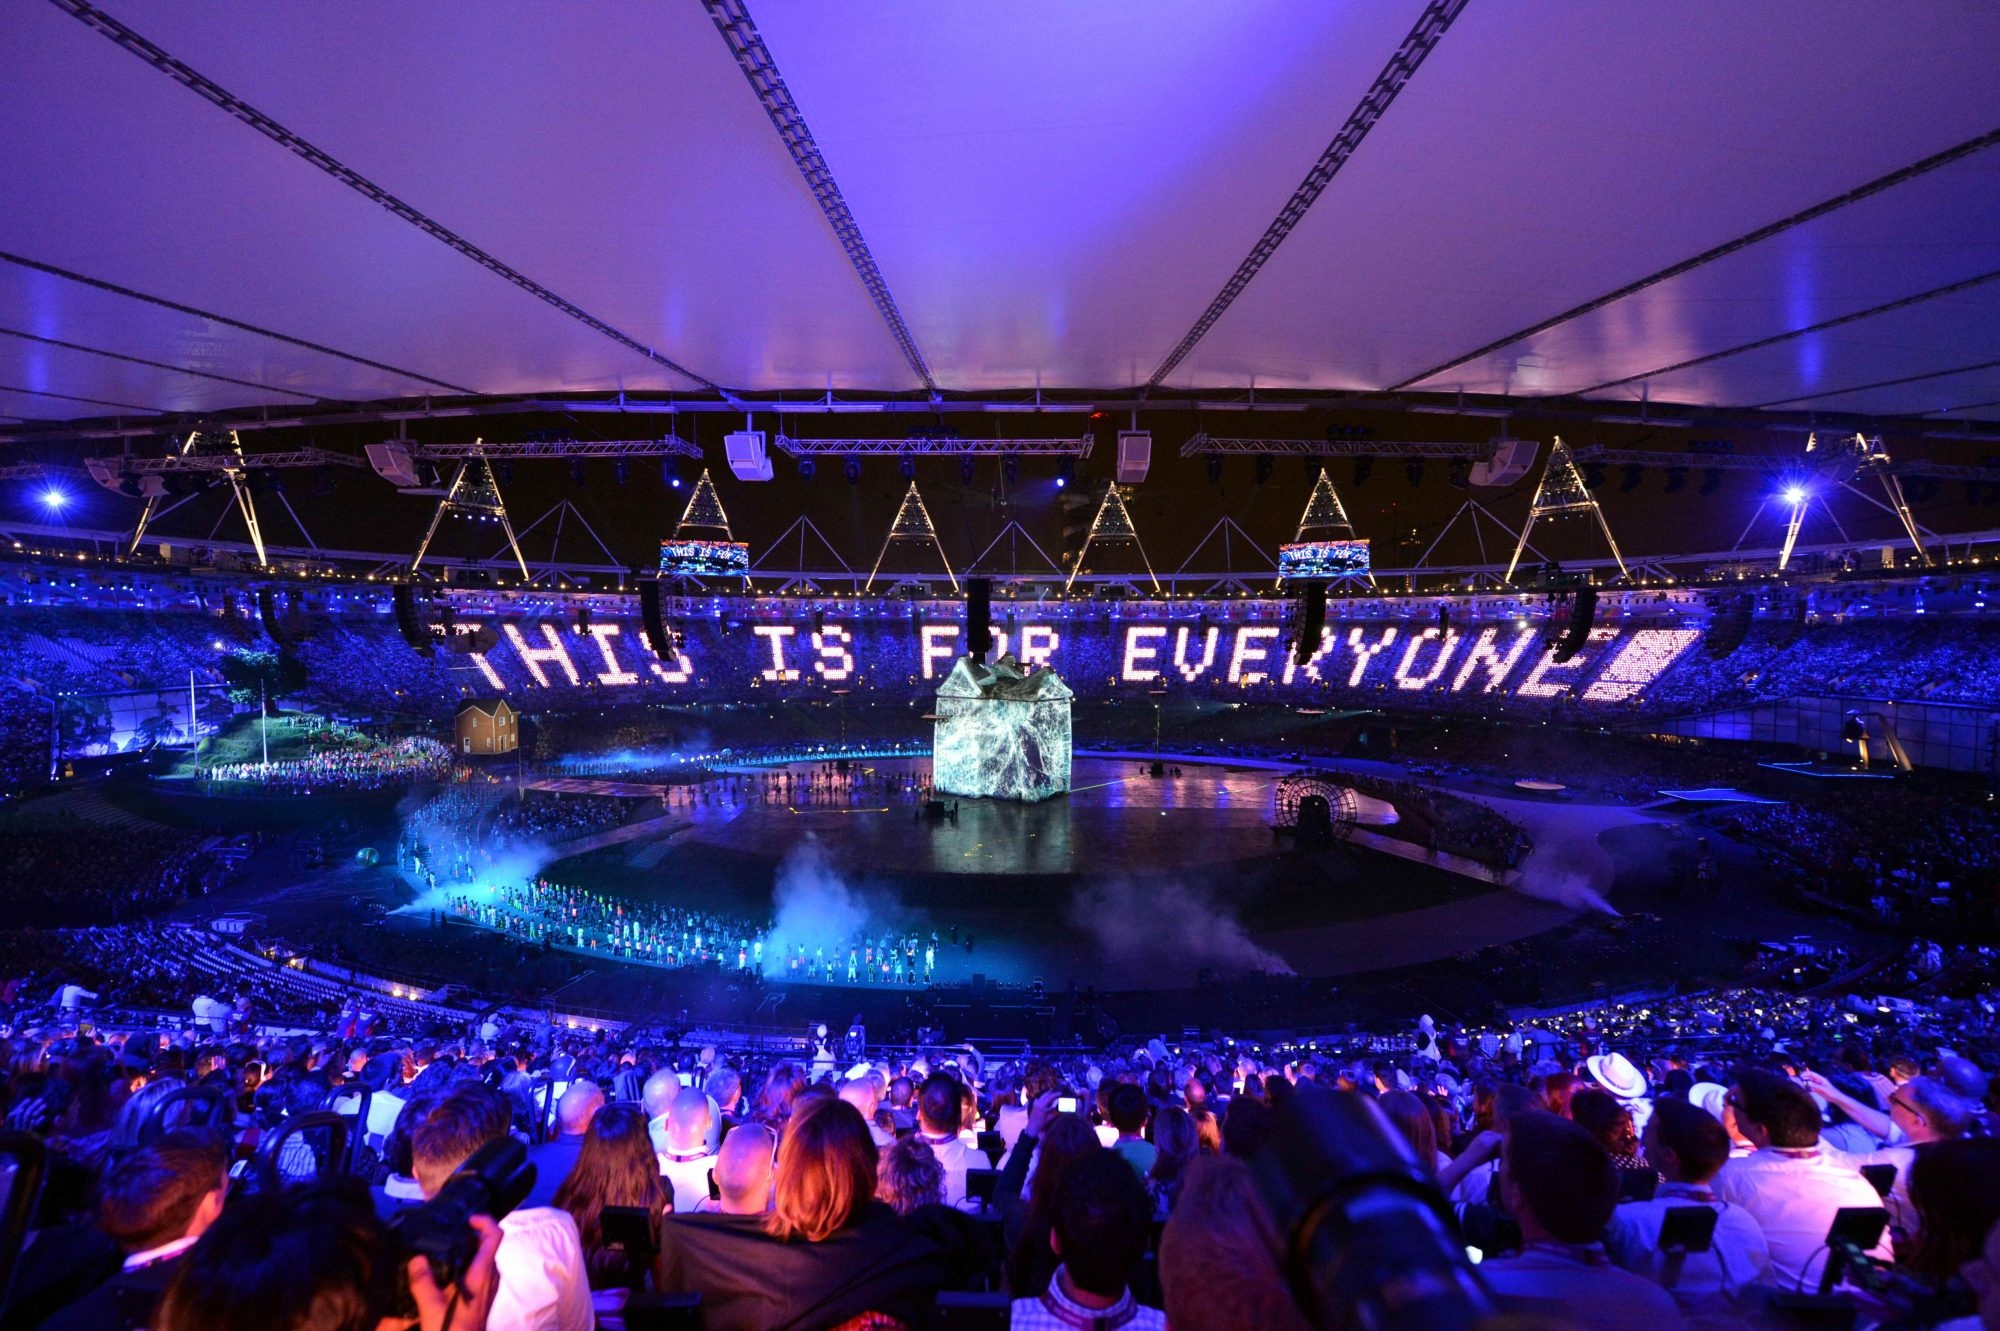 panasonic-projectors-light-up-london-2012-olympic-games-opening-ceremony